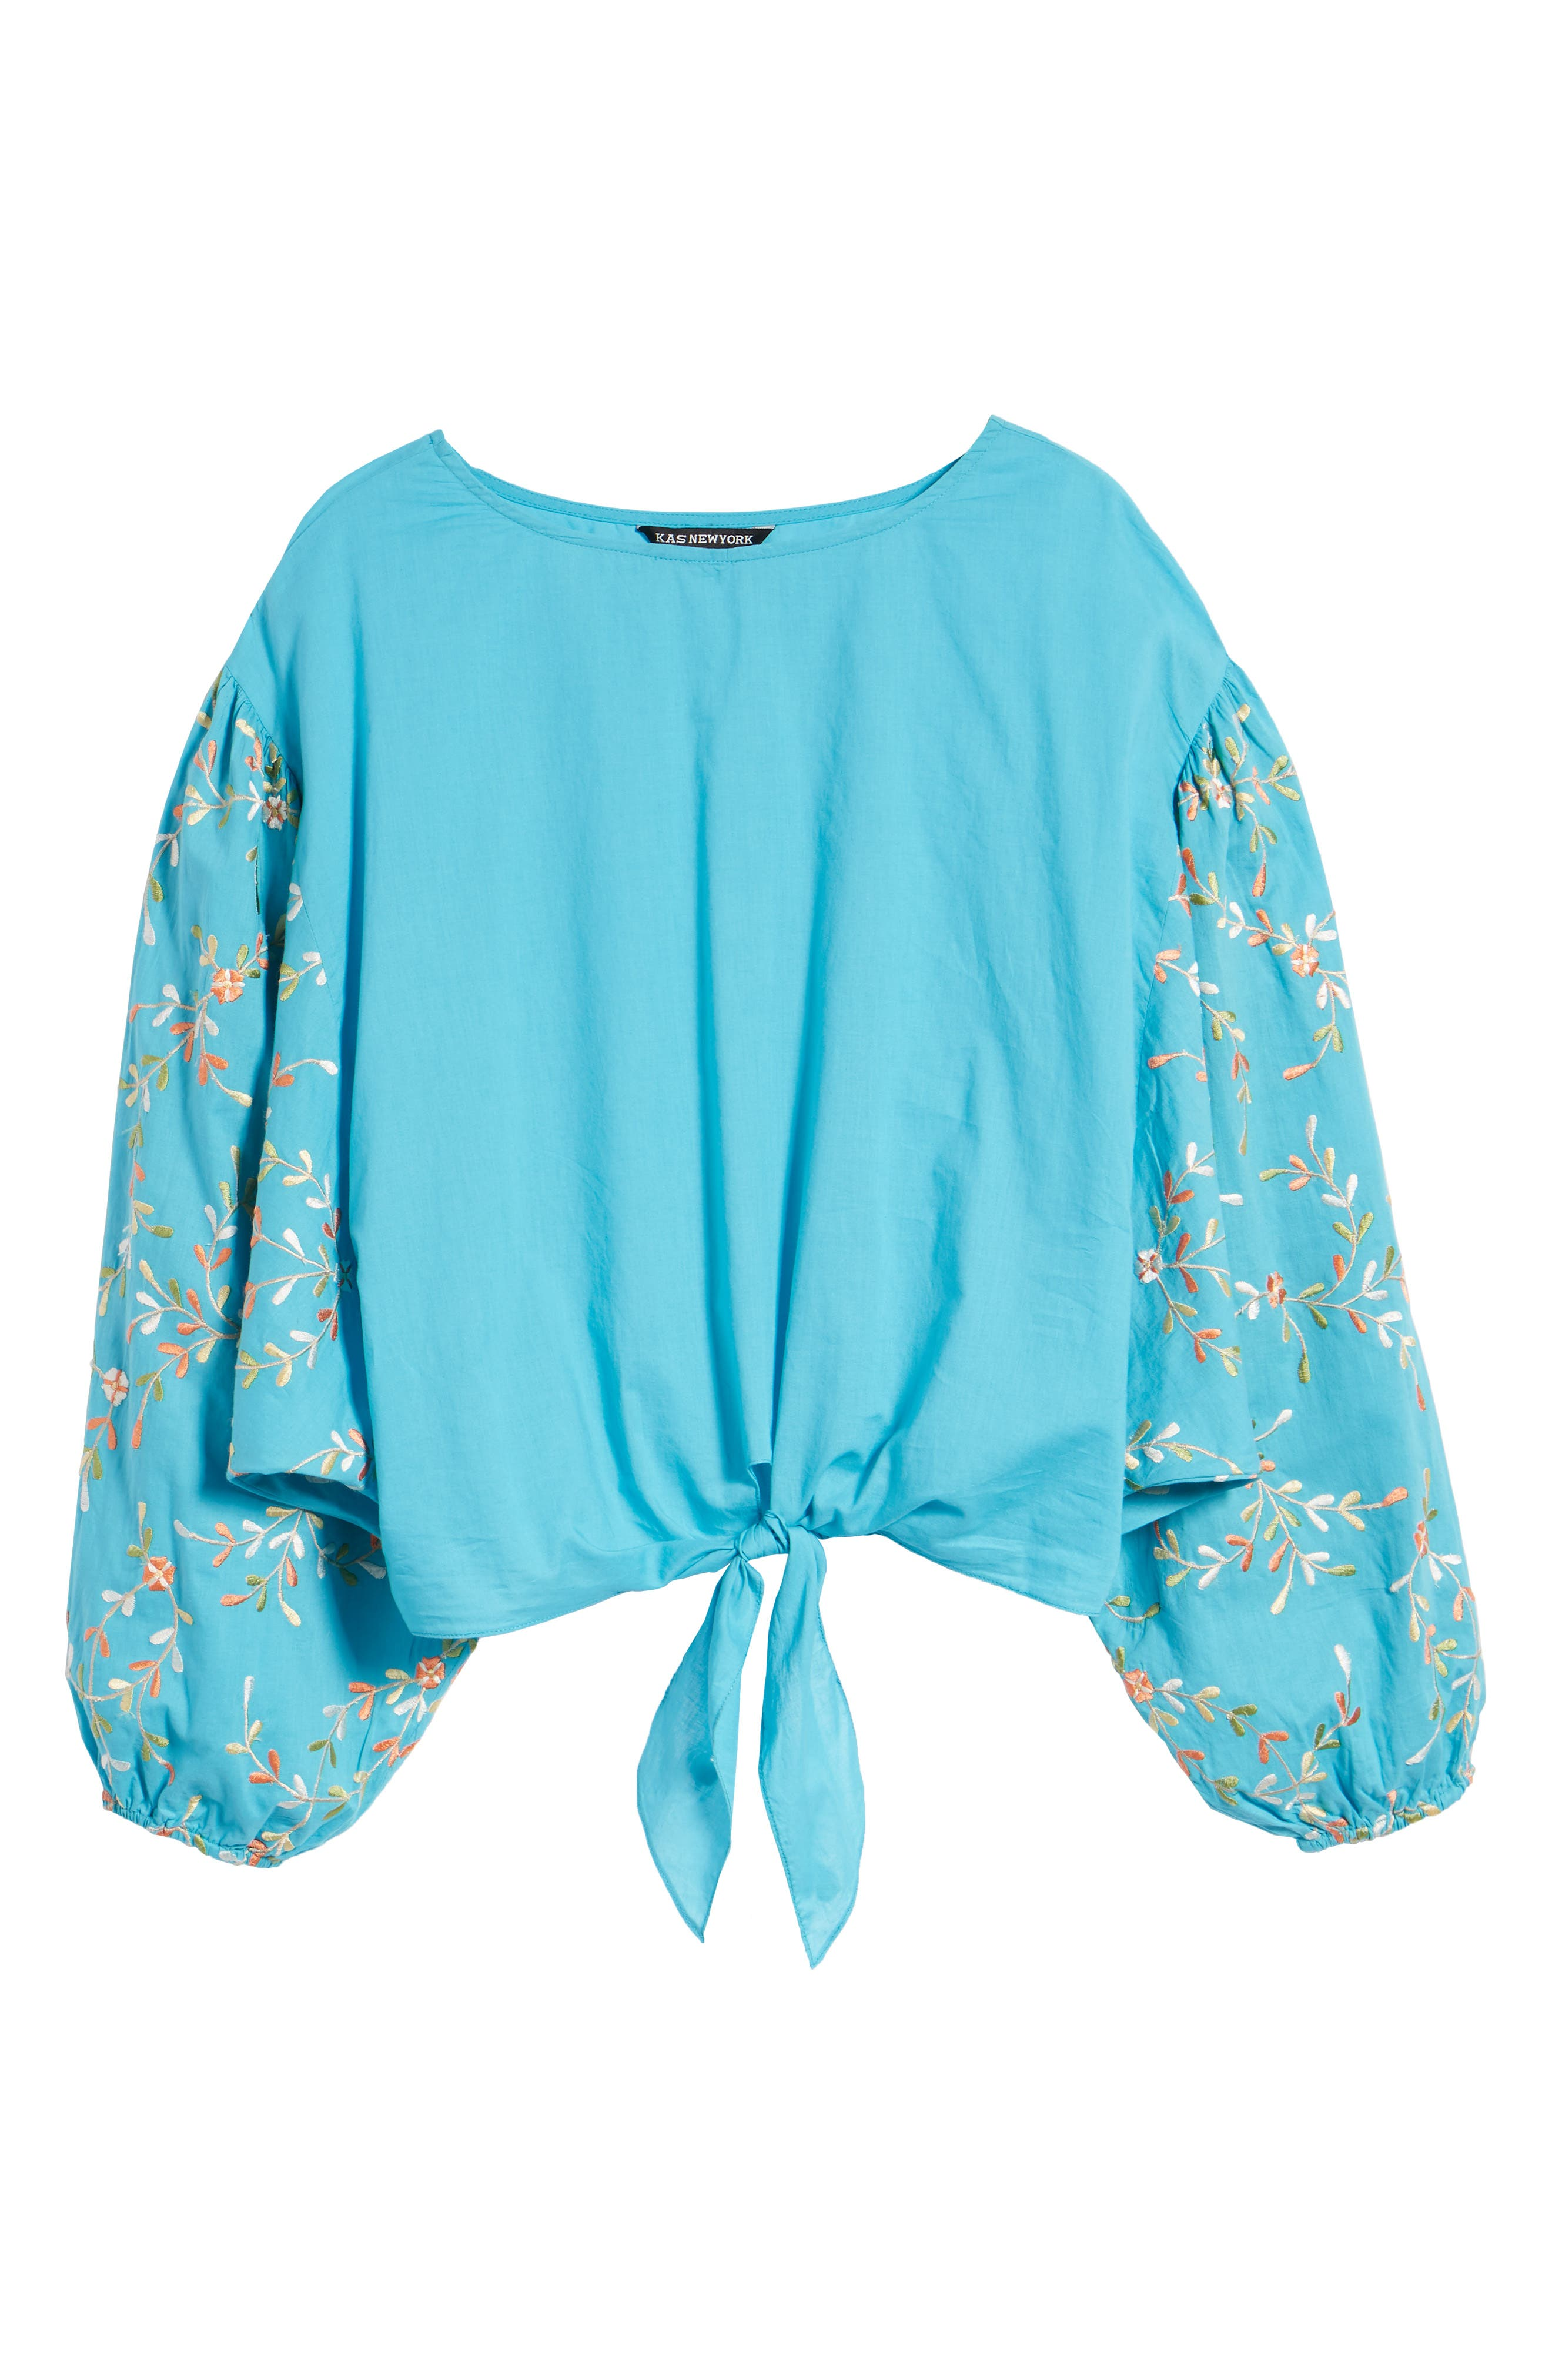 Coline Front Tie Embroidered Sleeve Blouse,                             Alternate thumbnail 7, color,                             Turquoise